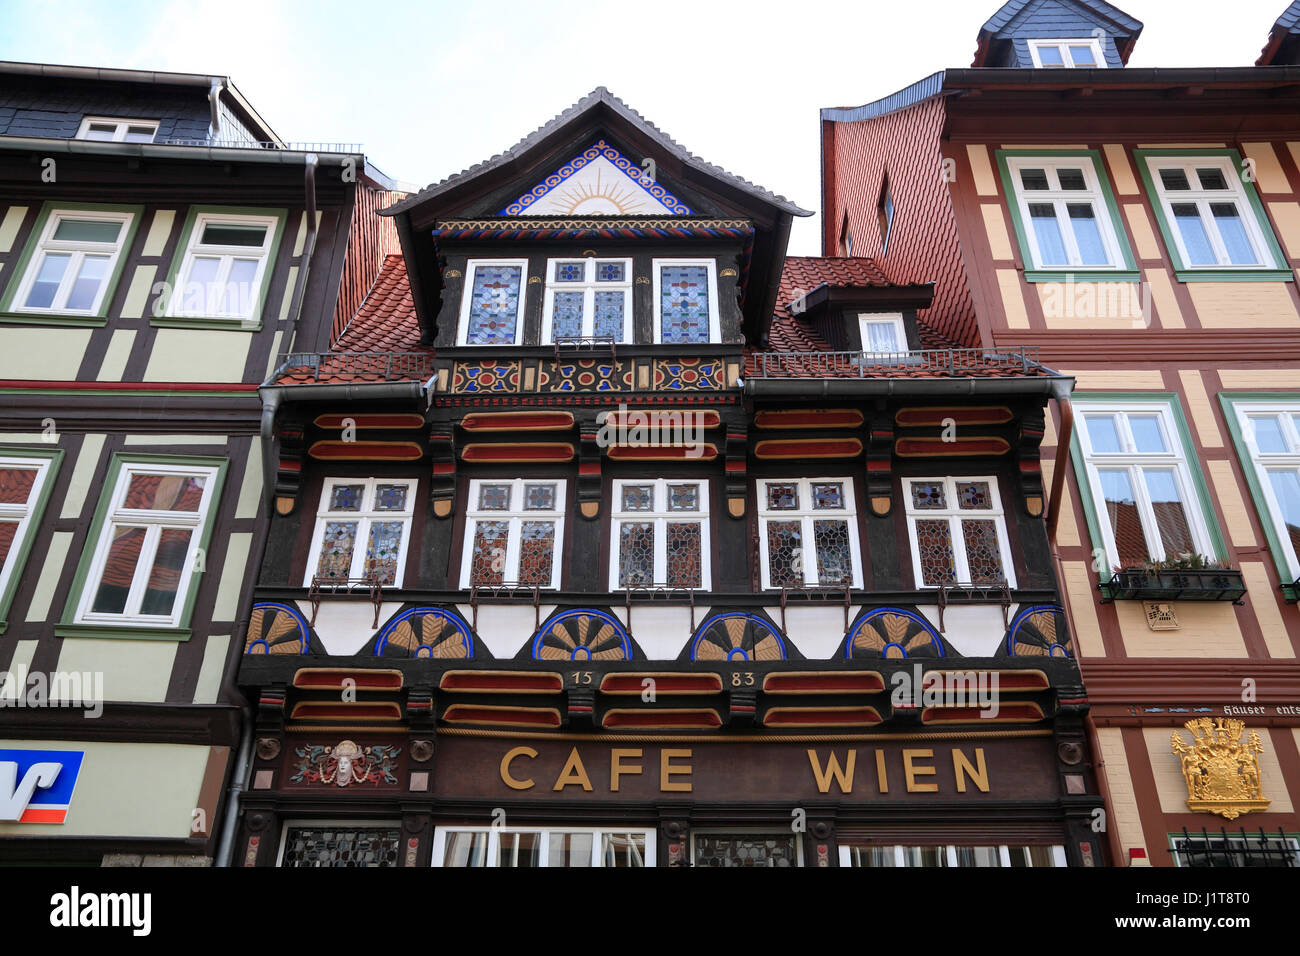 Traditional cafe Wien, Wernigerode, Saxony-Anhalt, Germany, Europe - Stock Image